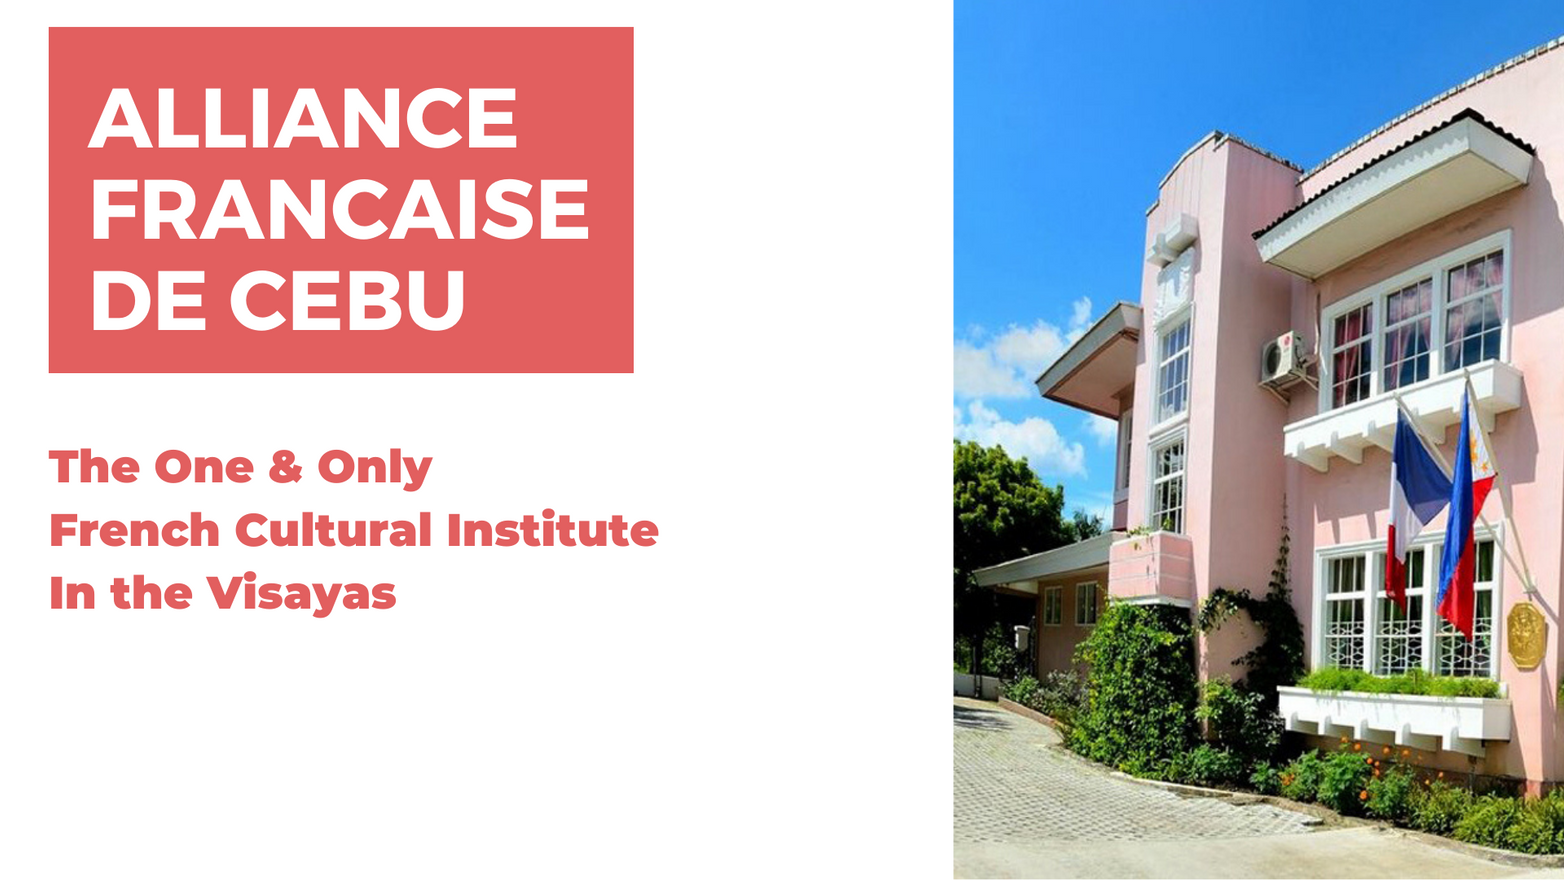 THE LEADING FRENCH CENTER IN THE VISAYAS